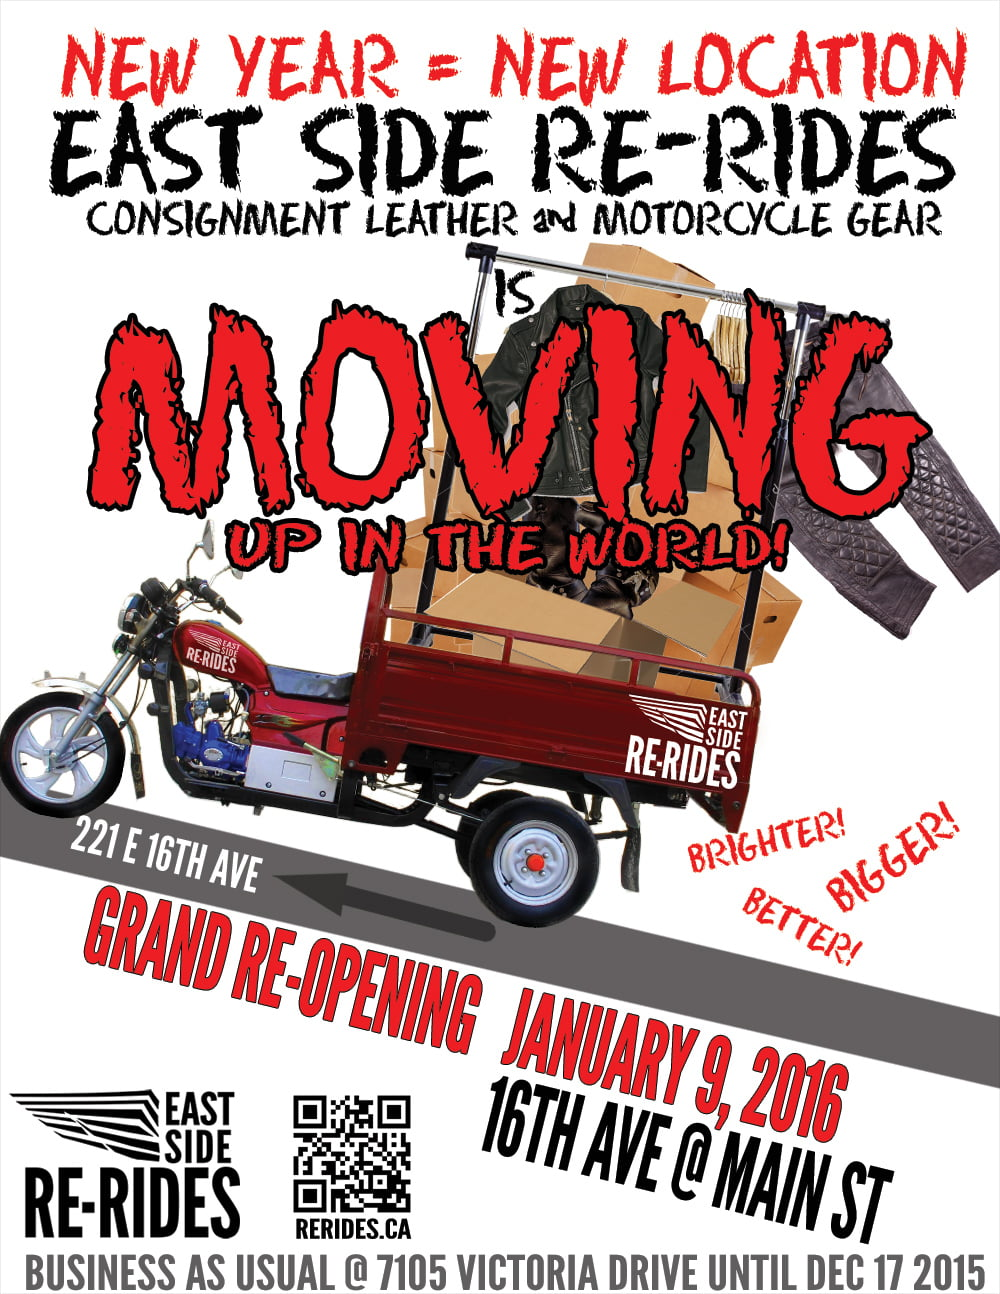 east-side-rerides-new-year-new-space-move-WEBGRAPHIC